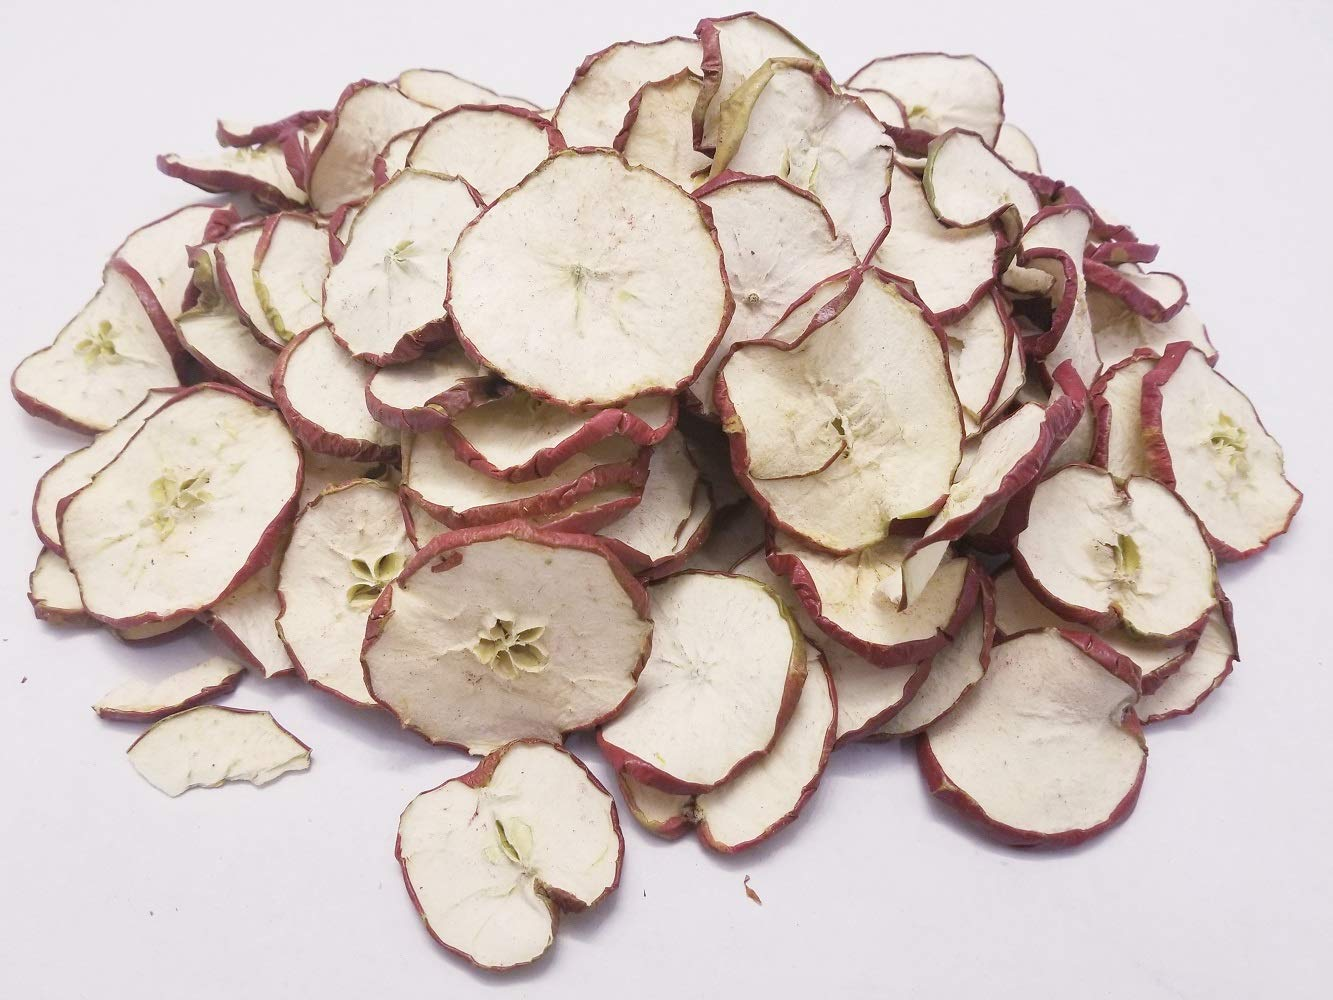 Little Valley Large 1 LB. Bag of Dried Red Apple Slices - Perfect as Potpourri, Craft, Bowl Filler, Decoration - Not Meant for Human Consumption by Little Valley (Image #1)